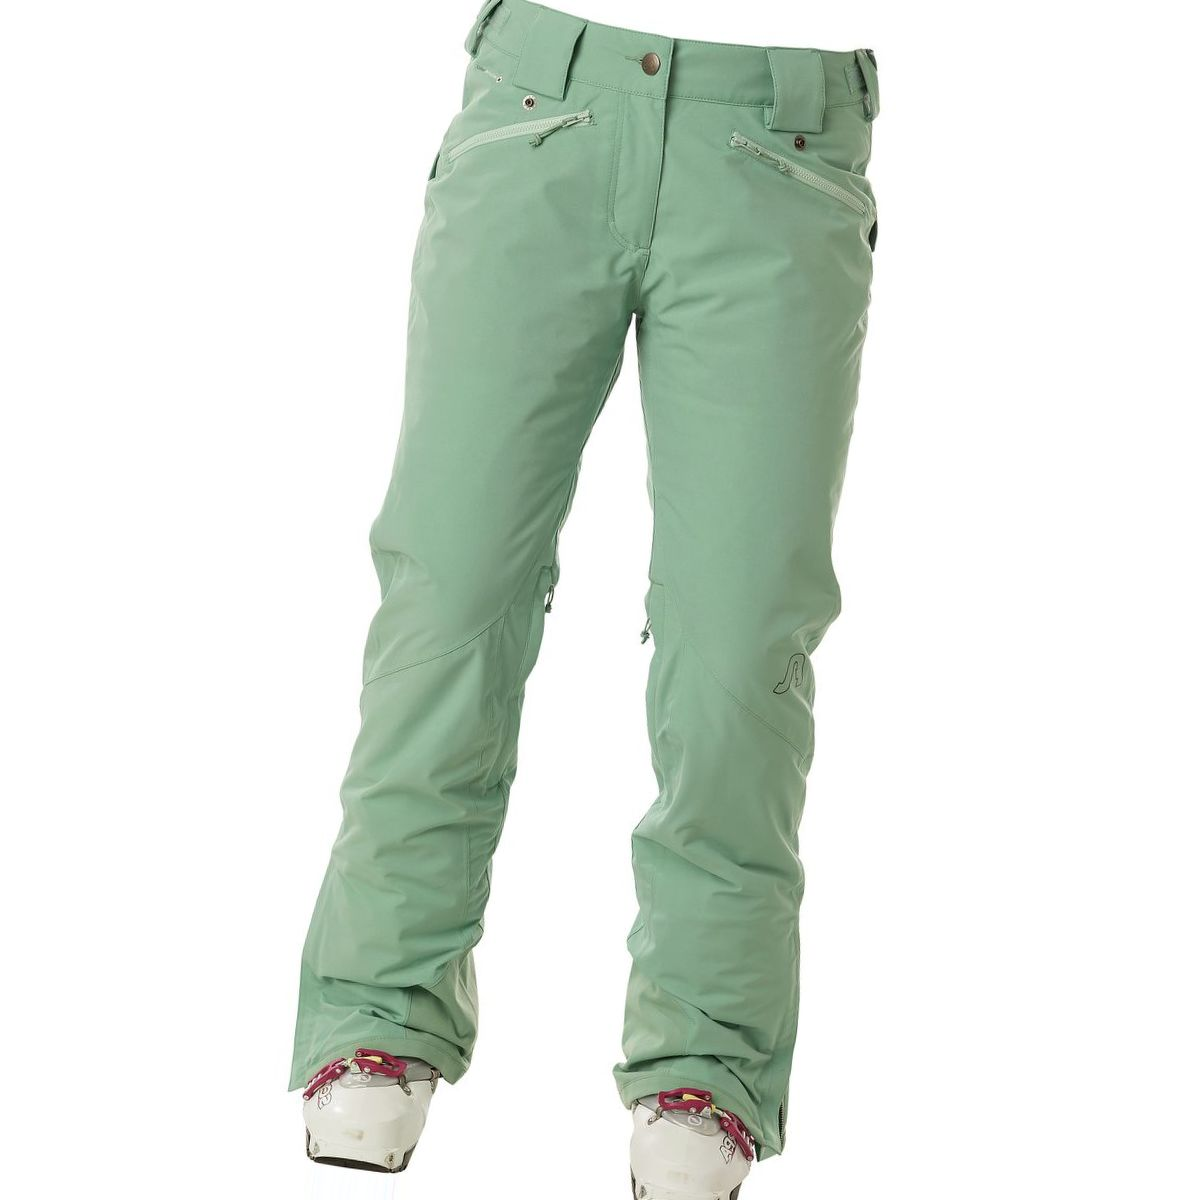 Flylow Daisy Insulated Pant - Women's